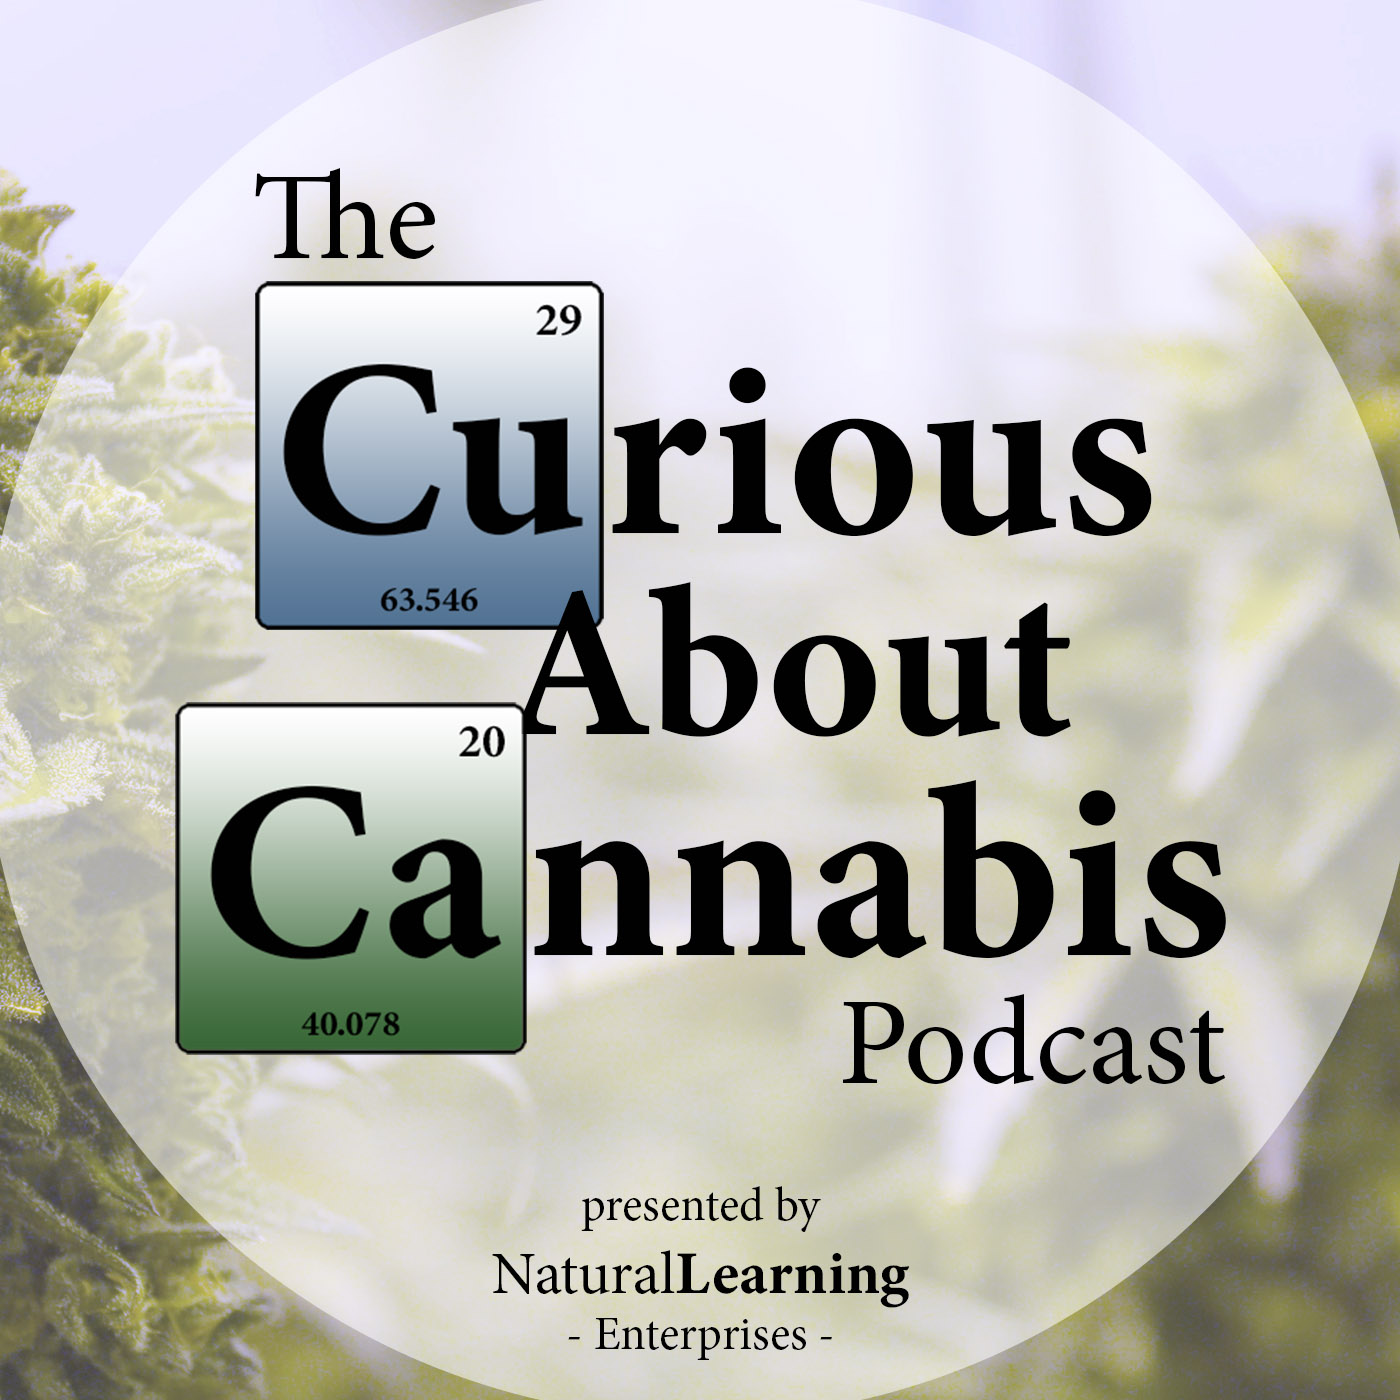 A highlight from Kevin Spelman PhD on Herbs to Compliment or Counteract Cannabis Effects   BTS #64